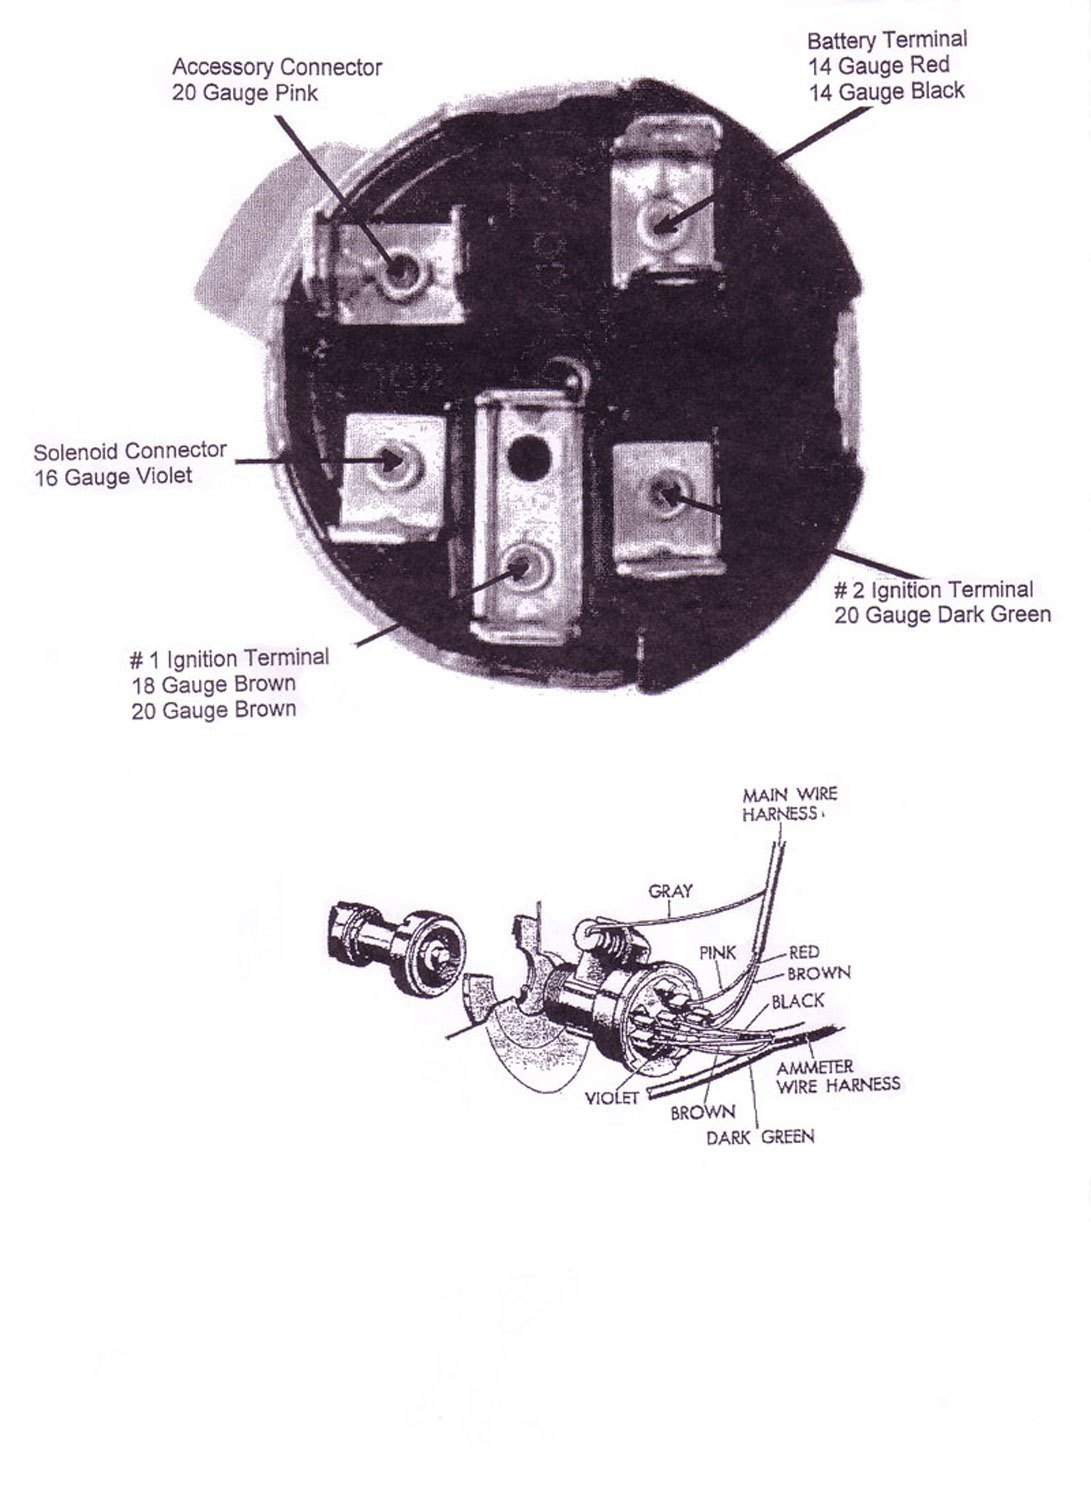 59 chevy truck ignition switch wiring diagram - cctv wiring diagram  schematic-rare - schematic-rare.coroangelo.it  coroangelo.it